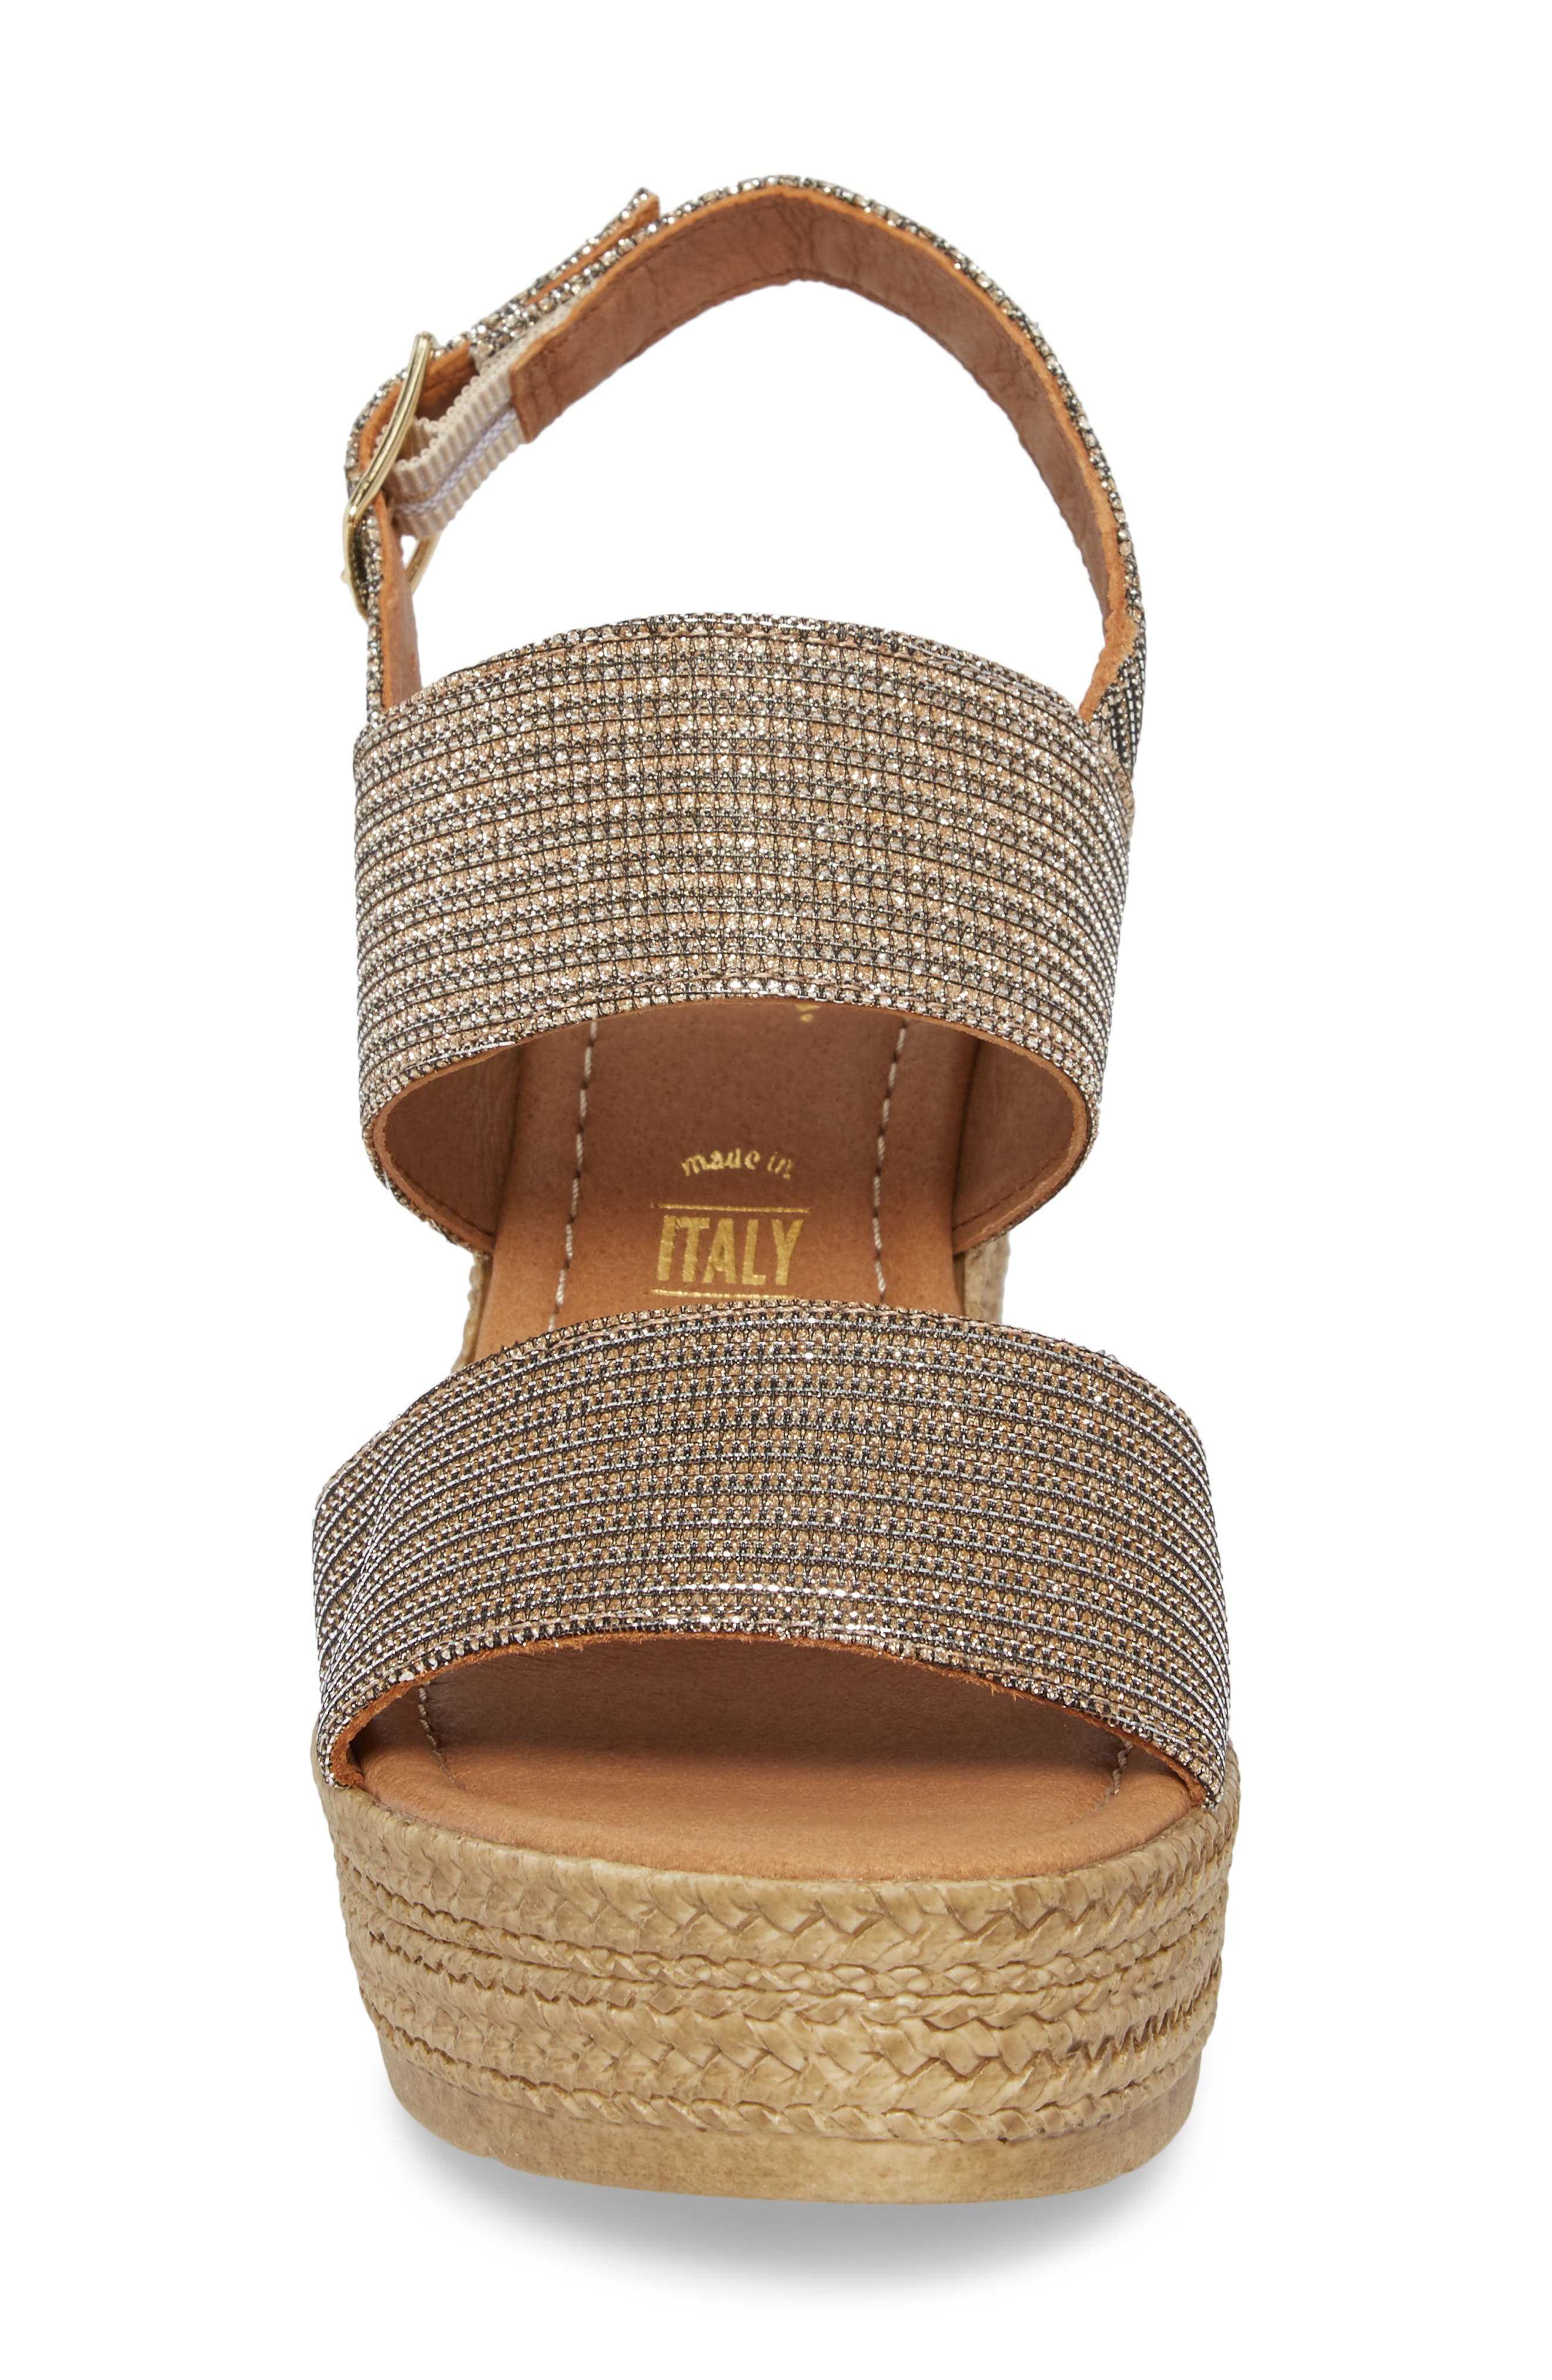 Downtime Wedge Sandal,                             Alternate thumbnail 4, color,                             Bronze Metallic Fabric